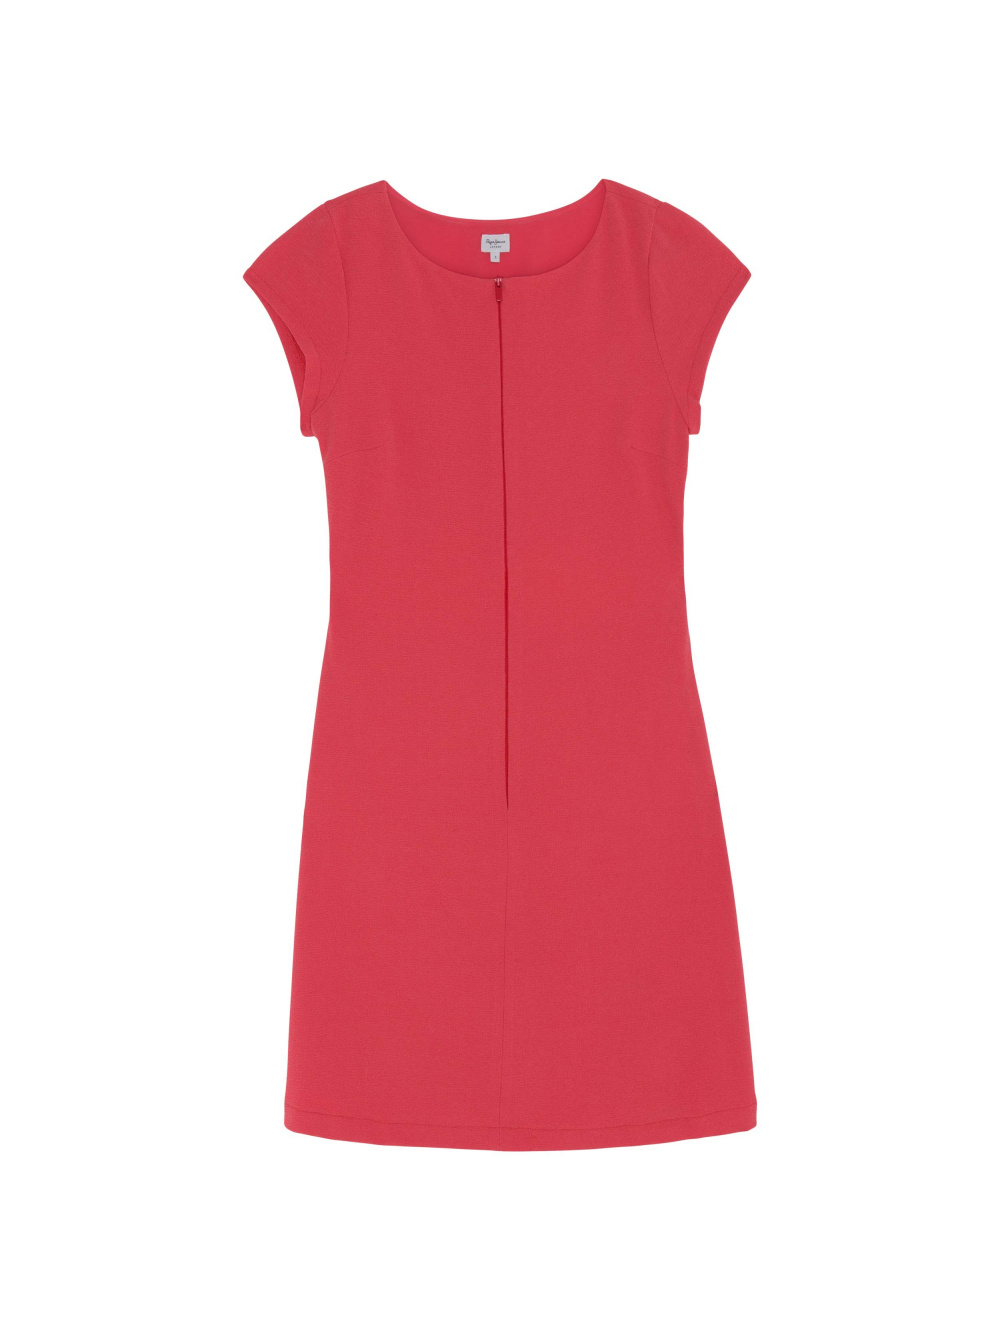 Robe courte femme rouge PEPE JEANS